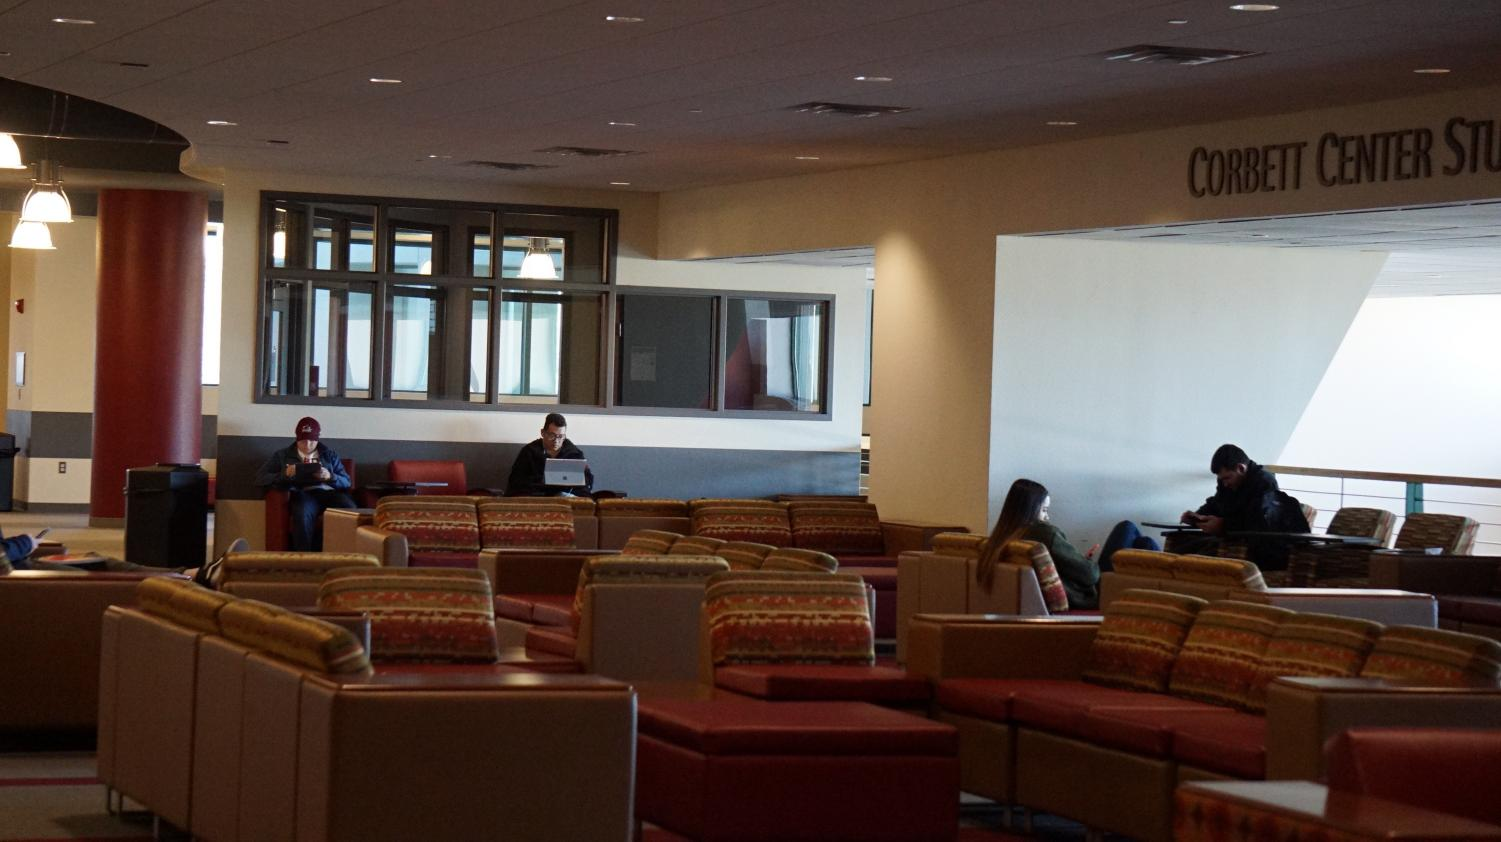 Students studying on the second floor of Corbett.